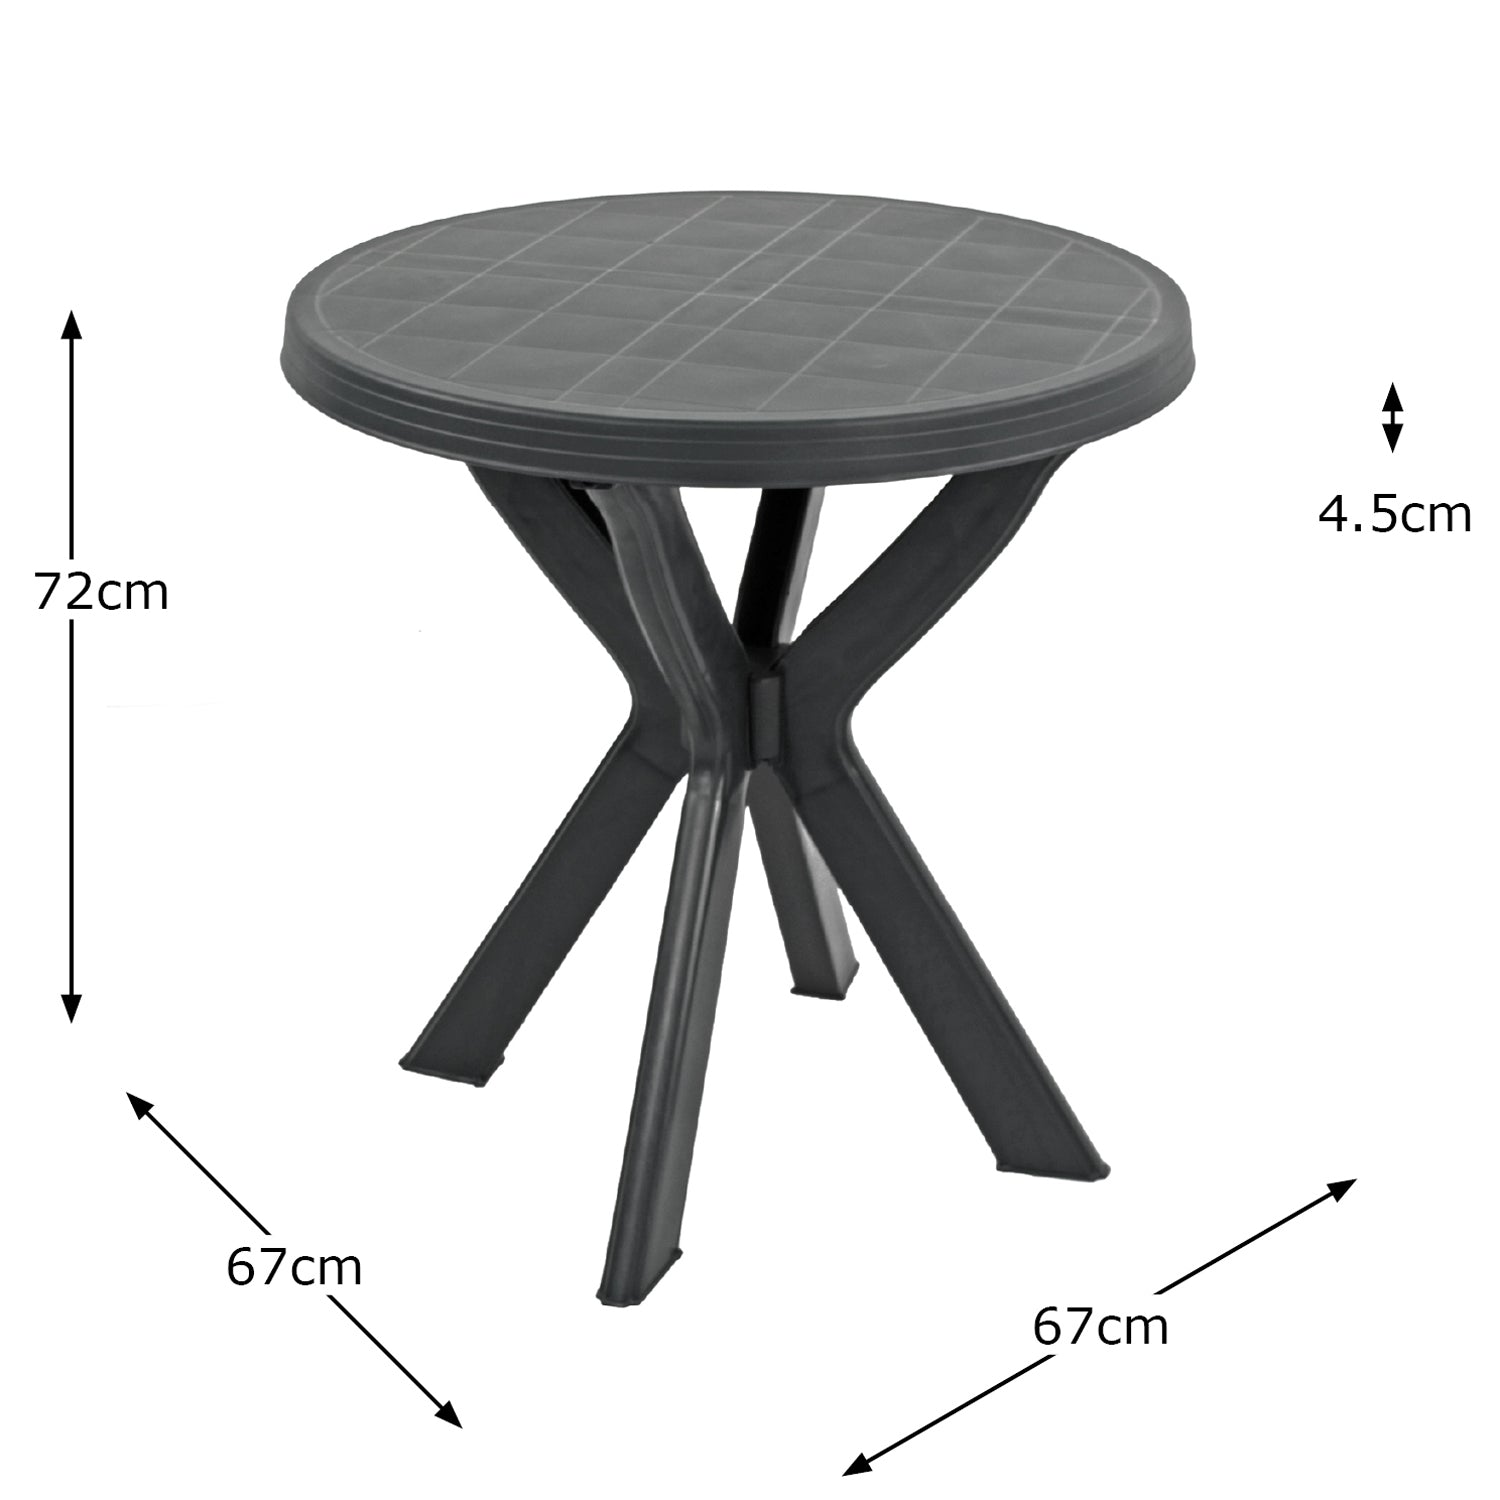 Trabella Tivoli Bistro Table Anthracite - Ruby's Garden Boutique